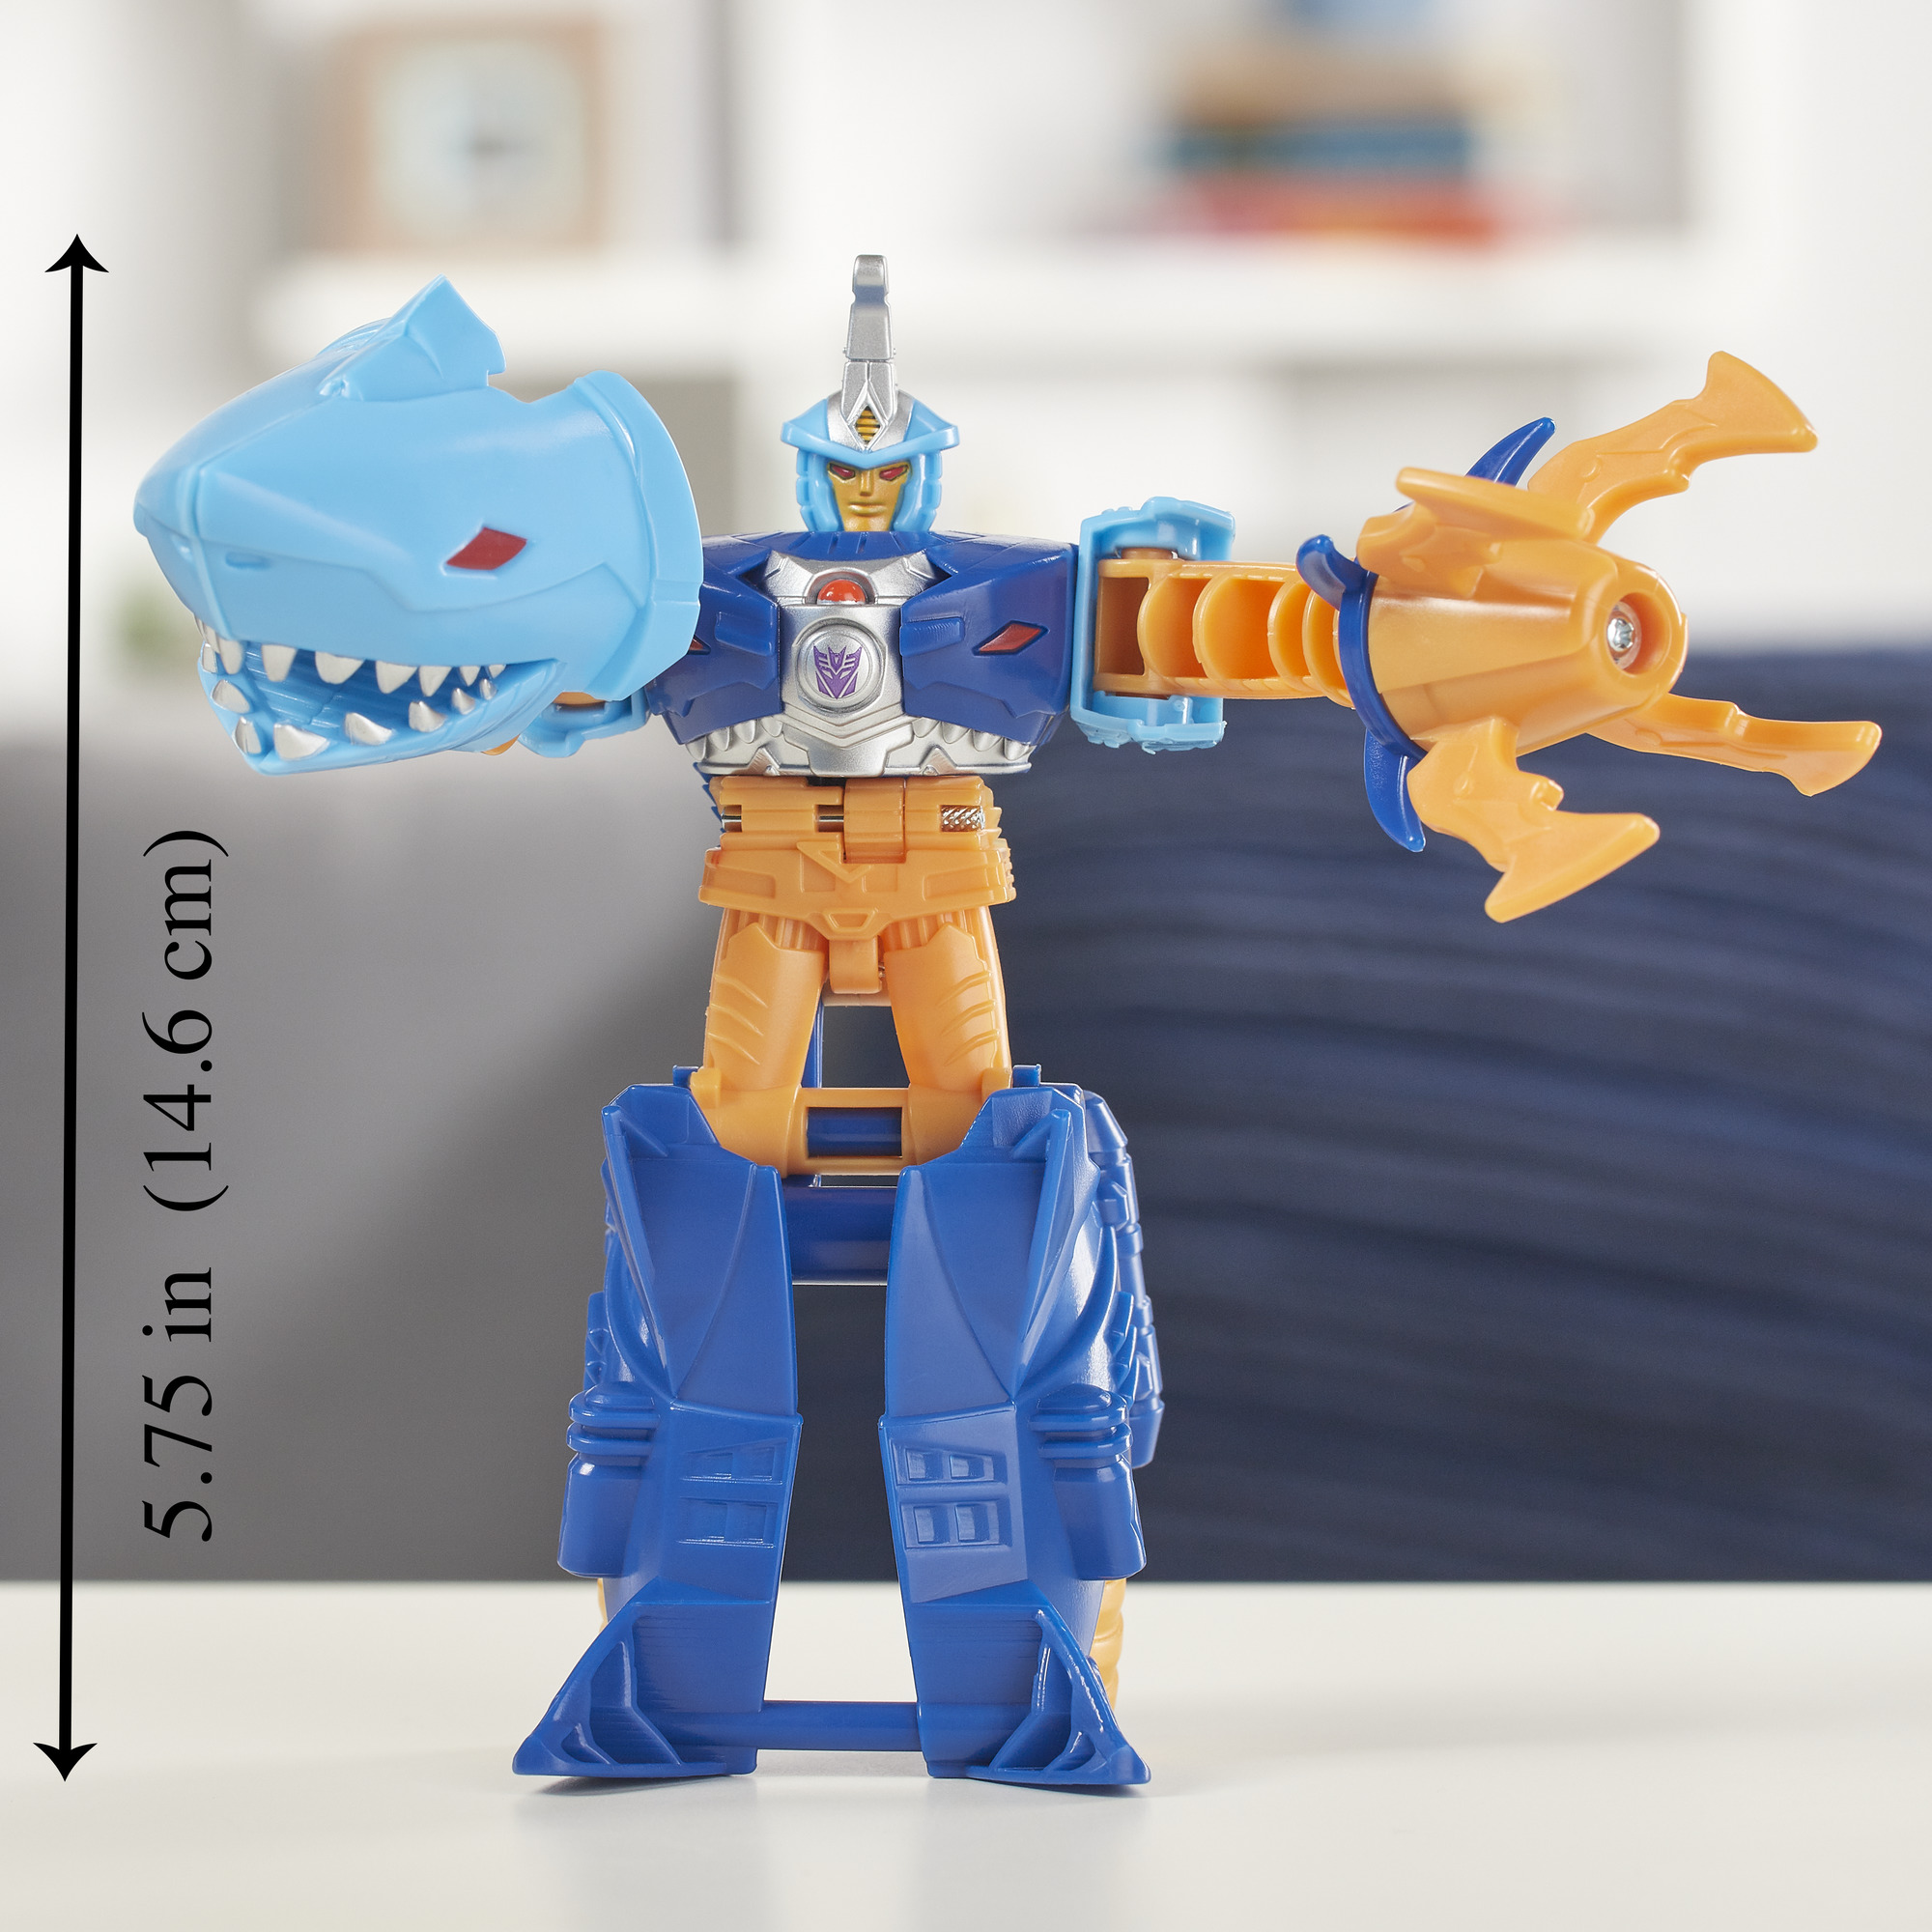 Transformers cyberverse 1-Step Changer Sky-byte Action Figure